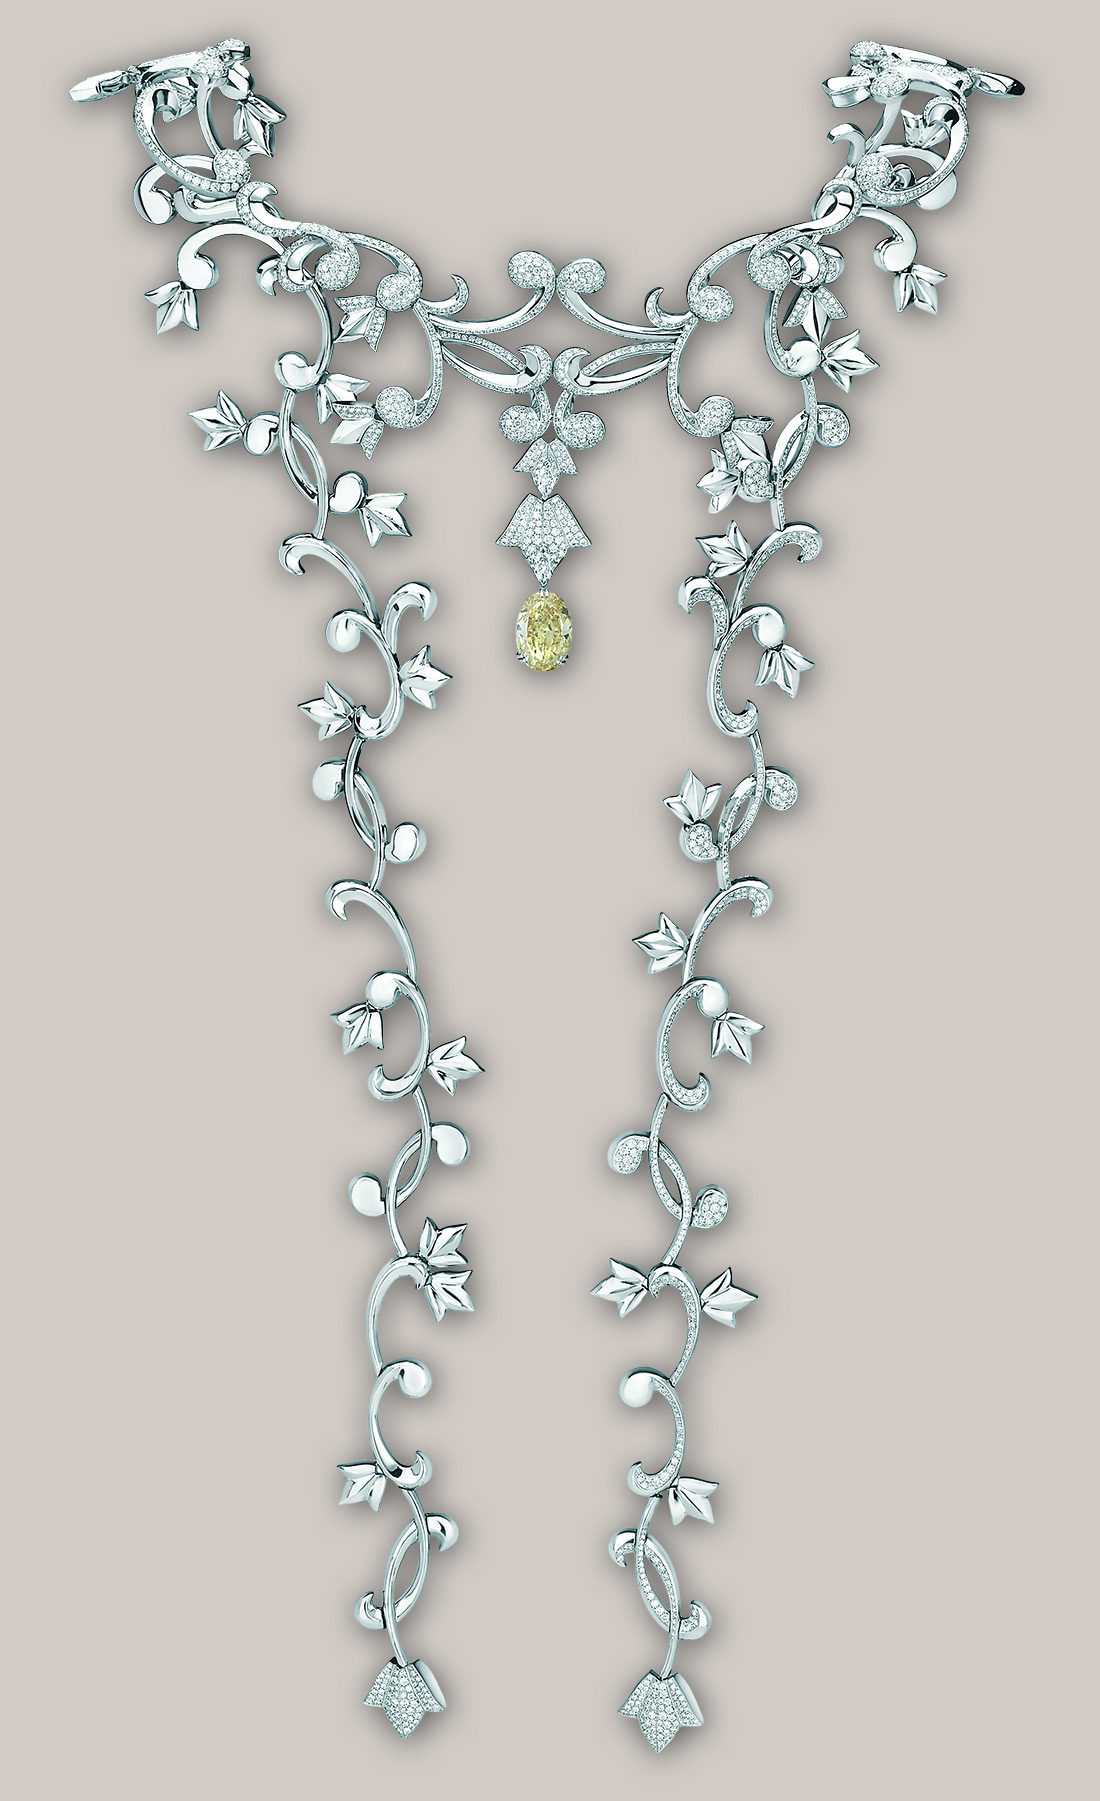 Mellerio dits Meller Secrets de Lys necklace with a 15cts yellow diamond